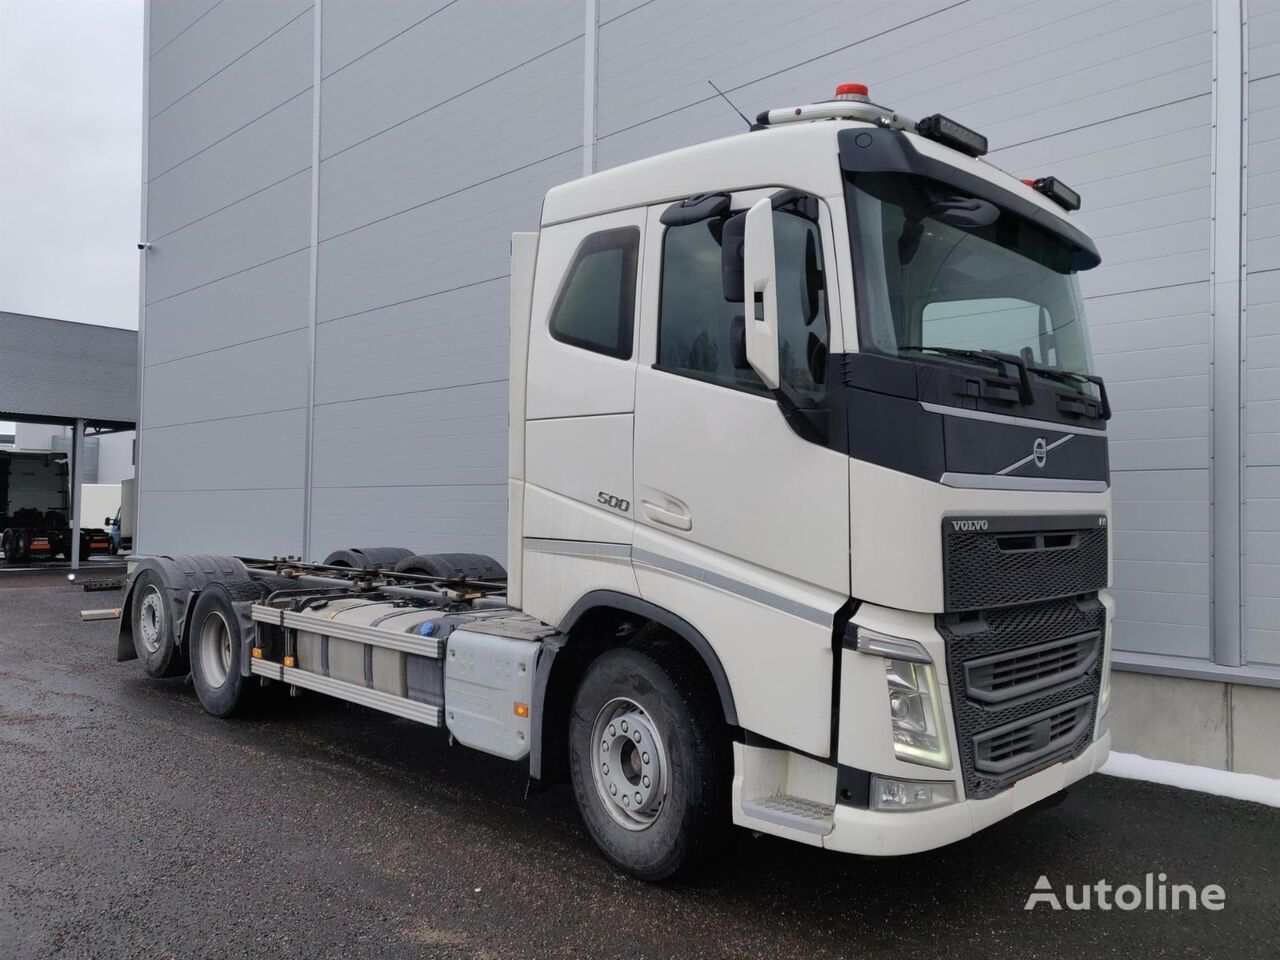 VOLVO FH13 Chassi Euro 6 chassis truck